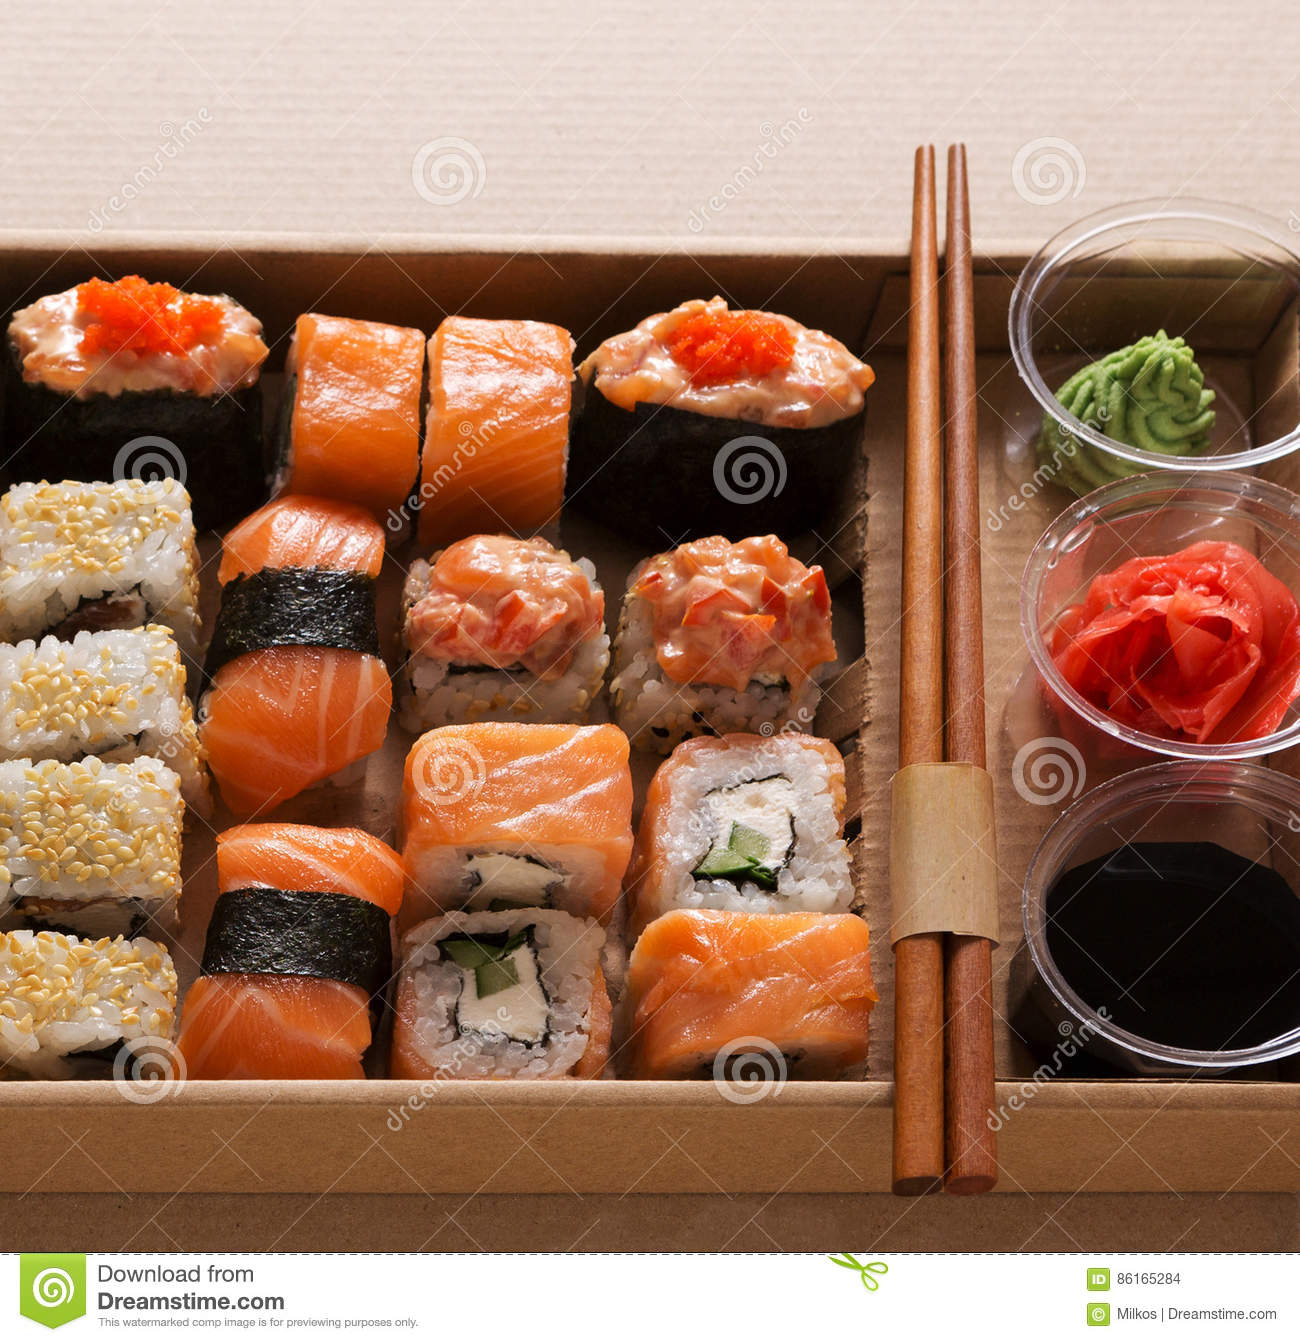 Set of sushi maki and rolls closeup in carton delivery box for Asian cuisine delivery